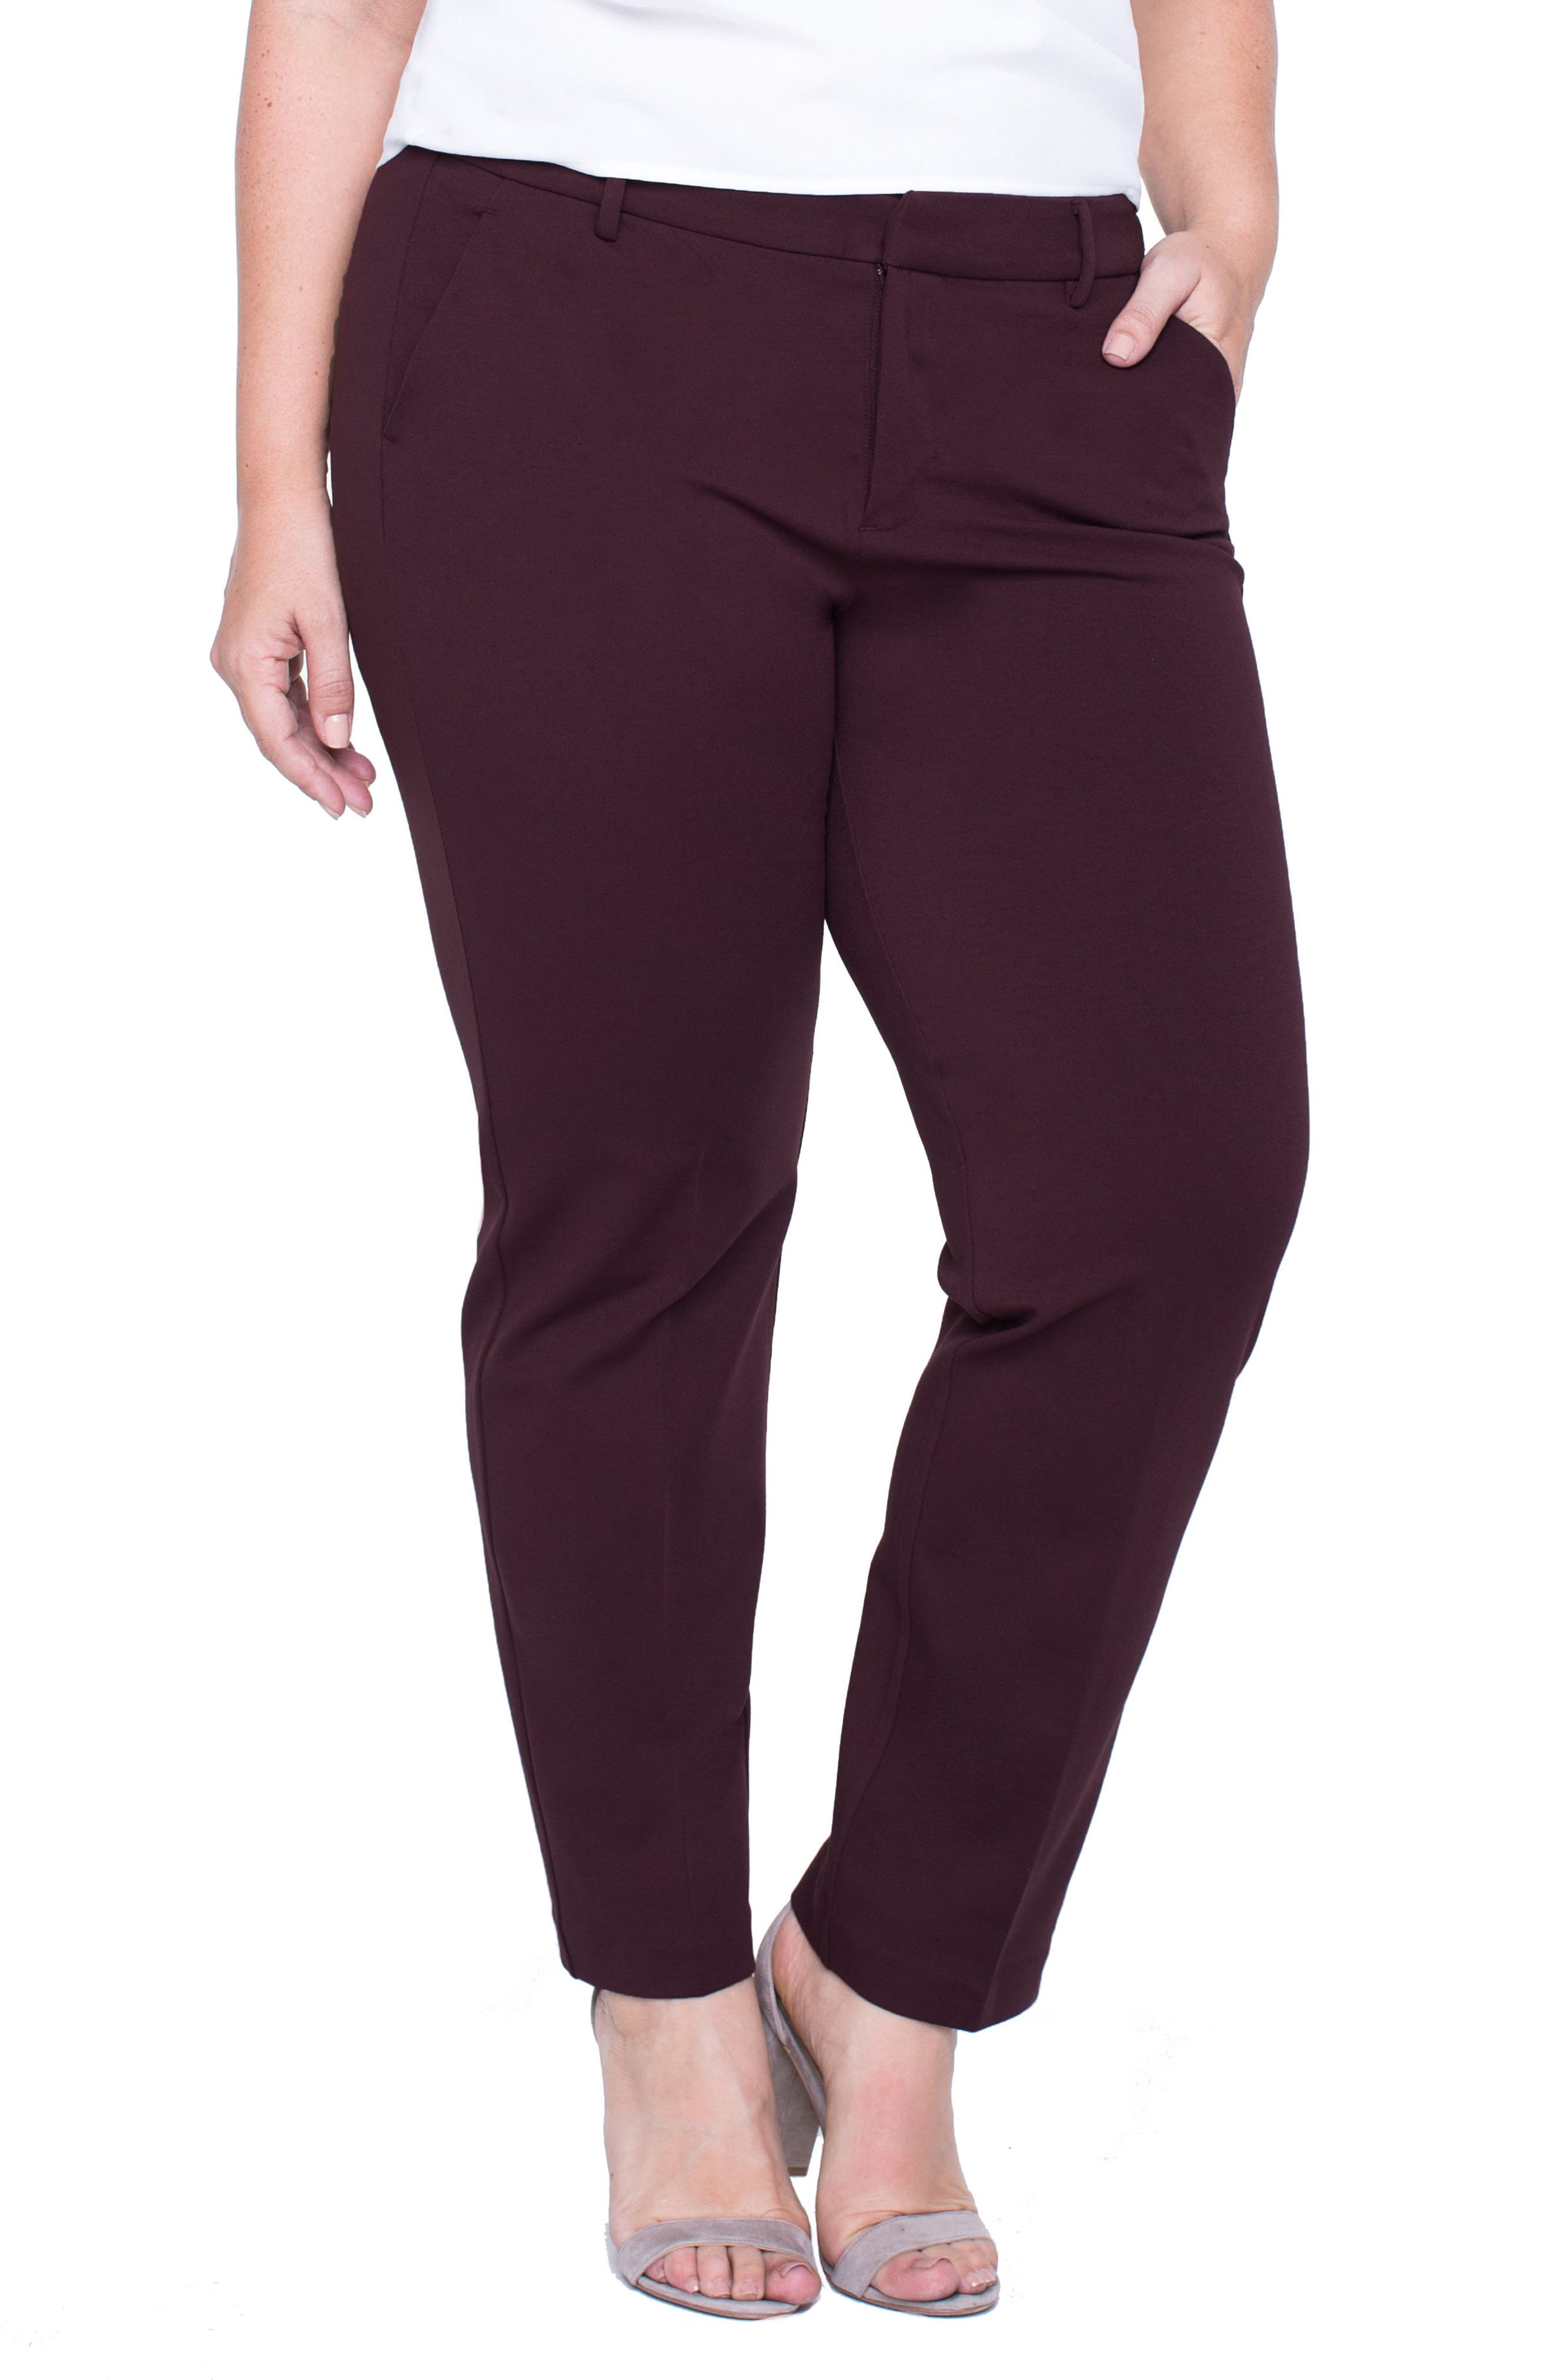 Liverpool Jeans Company Kelsey Ponte Knit Trousers (Plus Size)